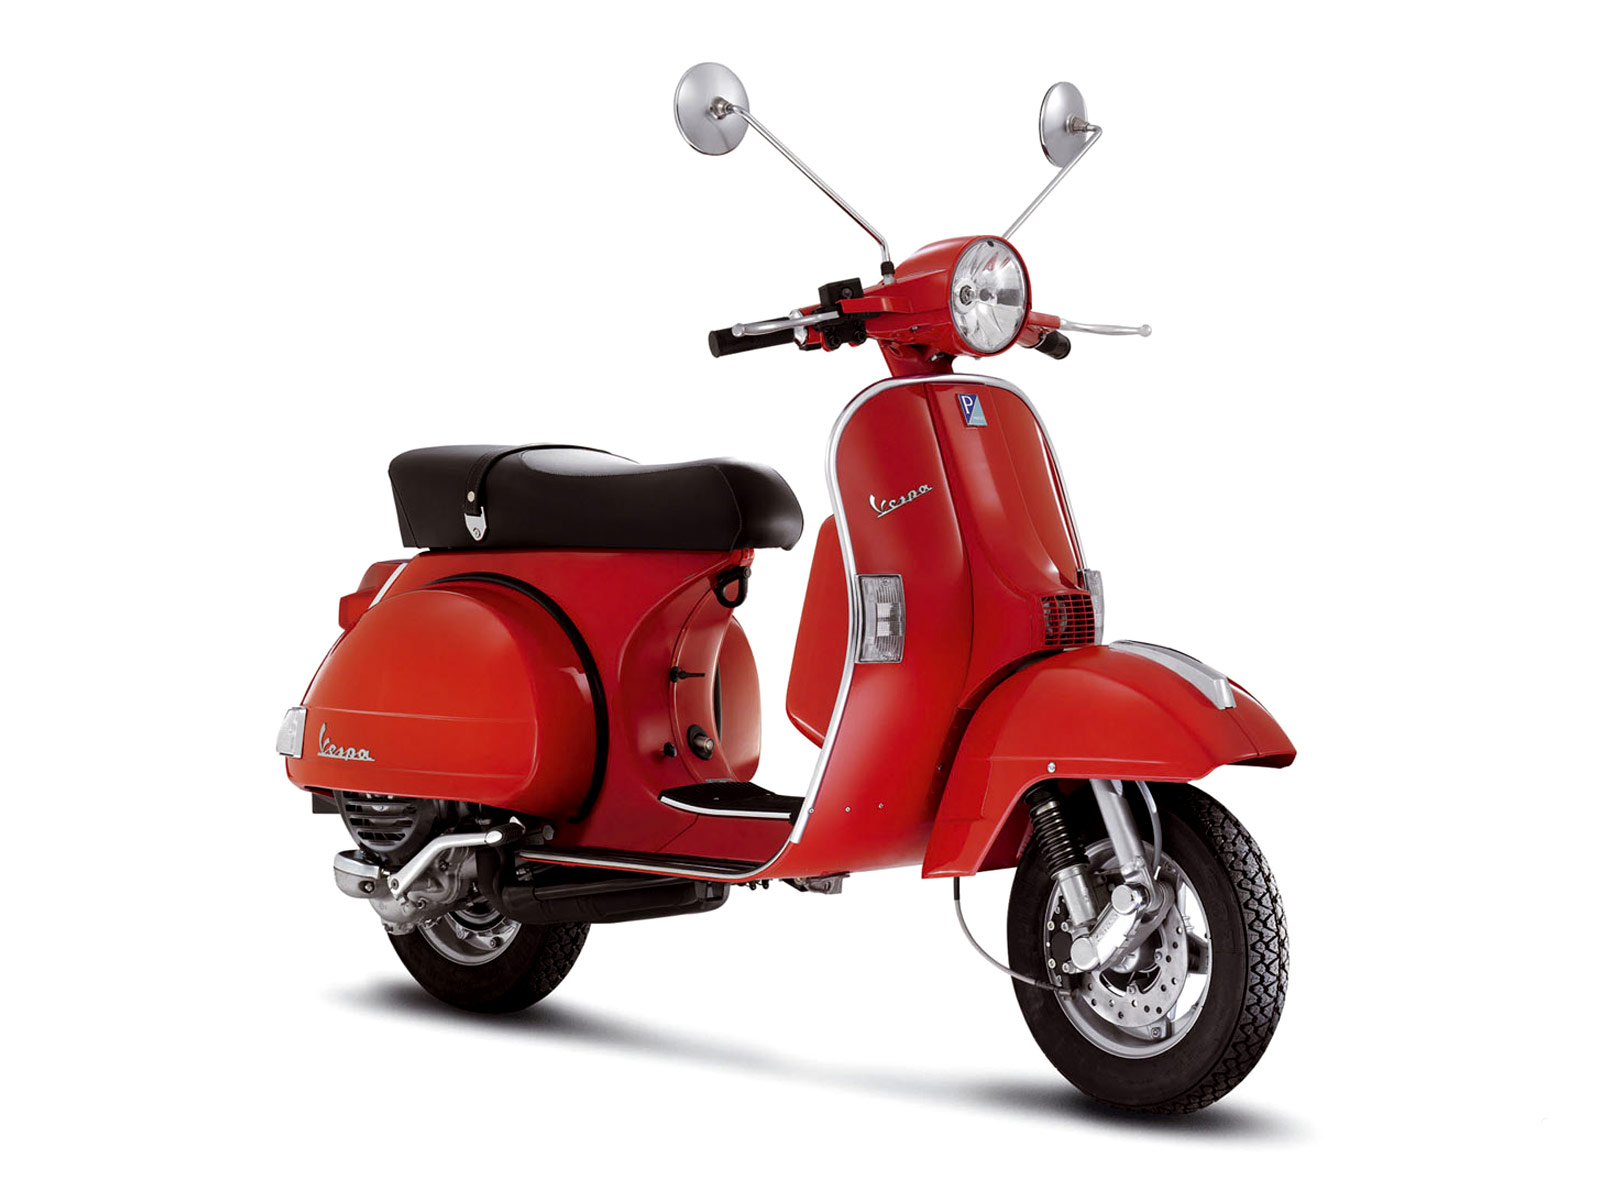 Scooter picture specs dealers insurance lawyers information 1600x1200